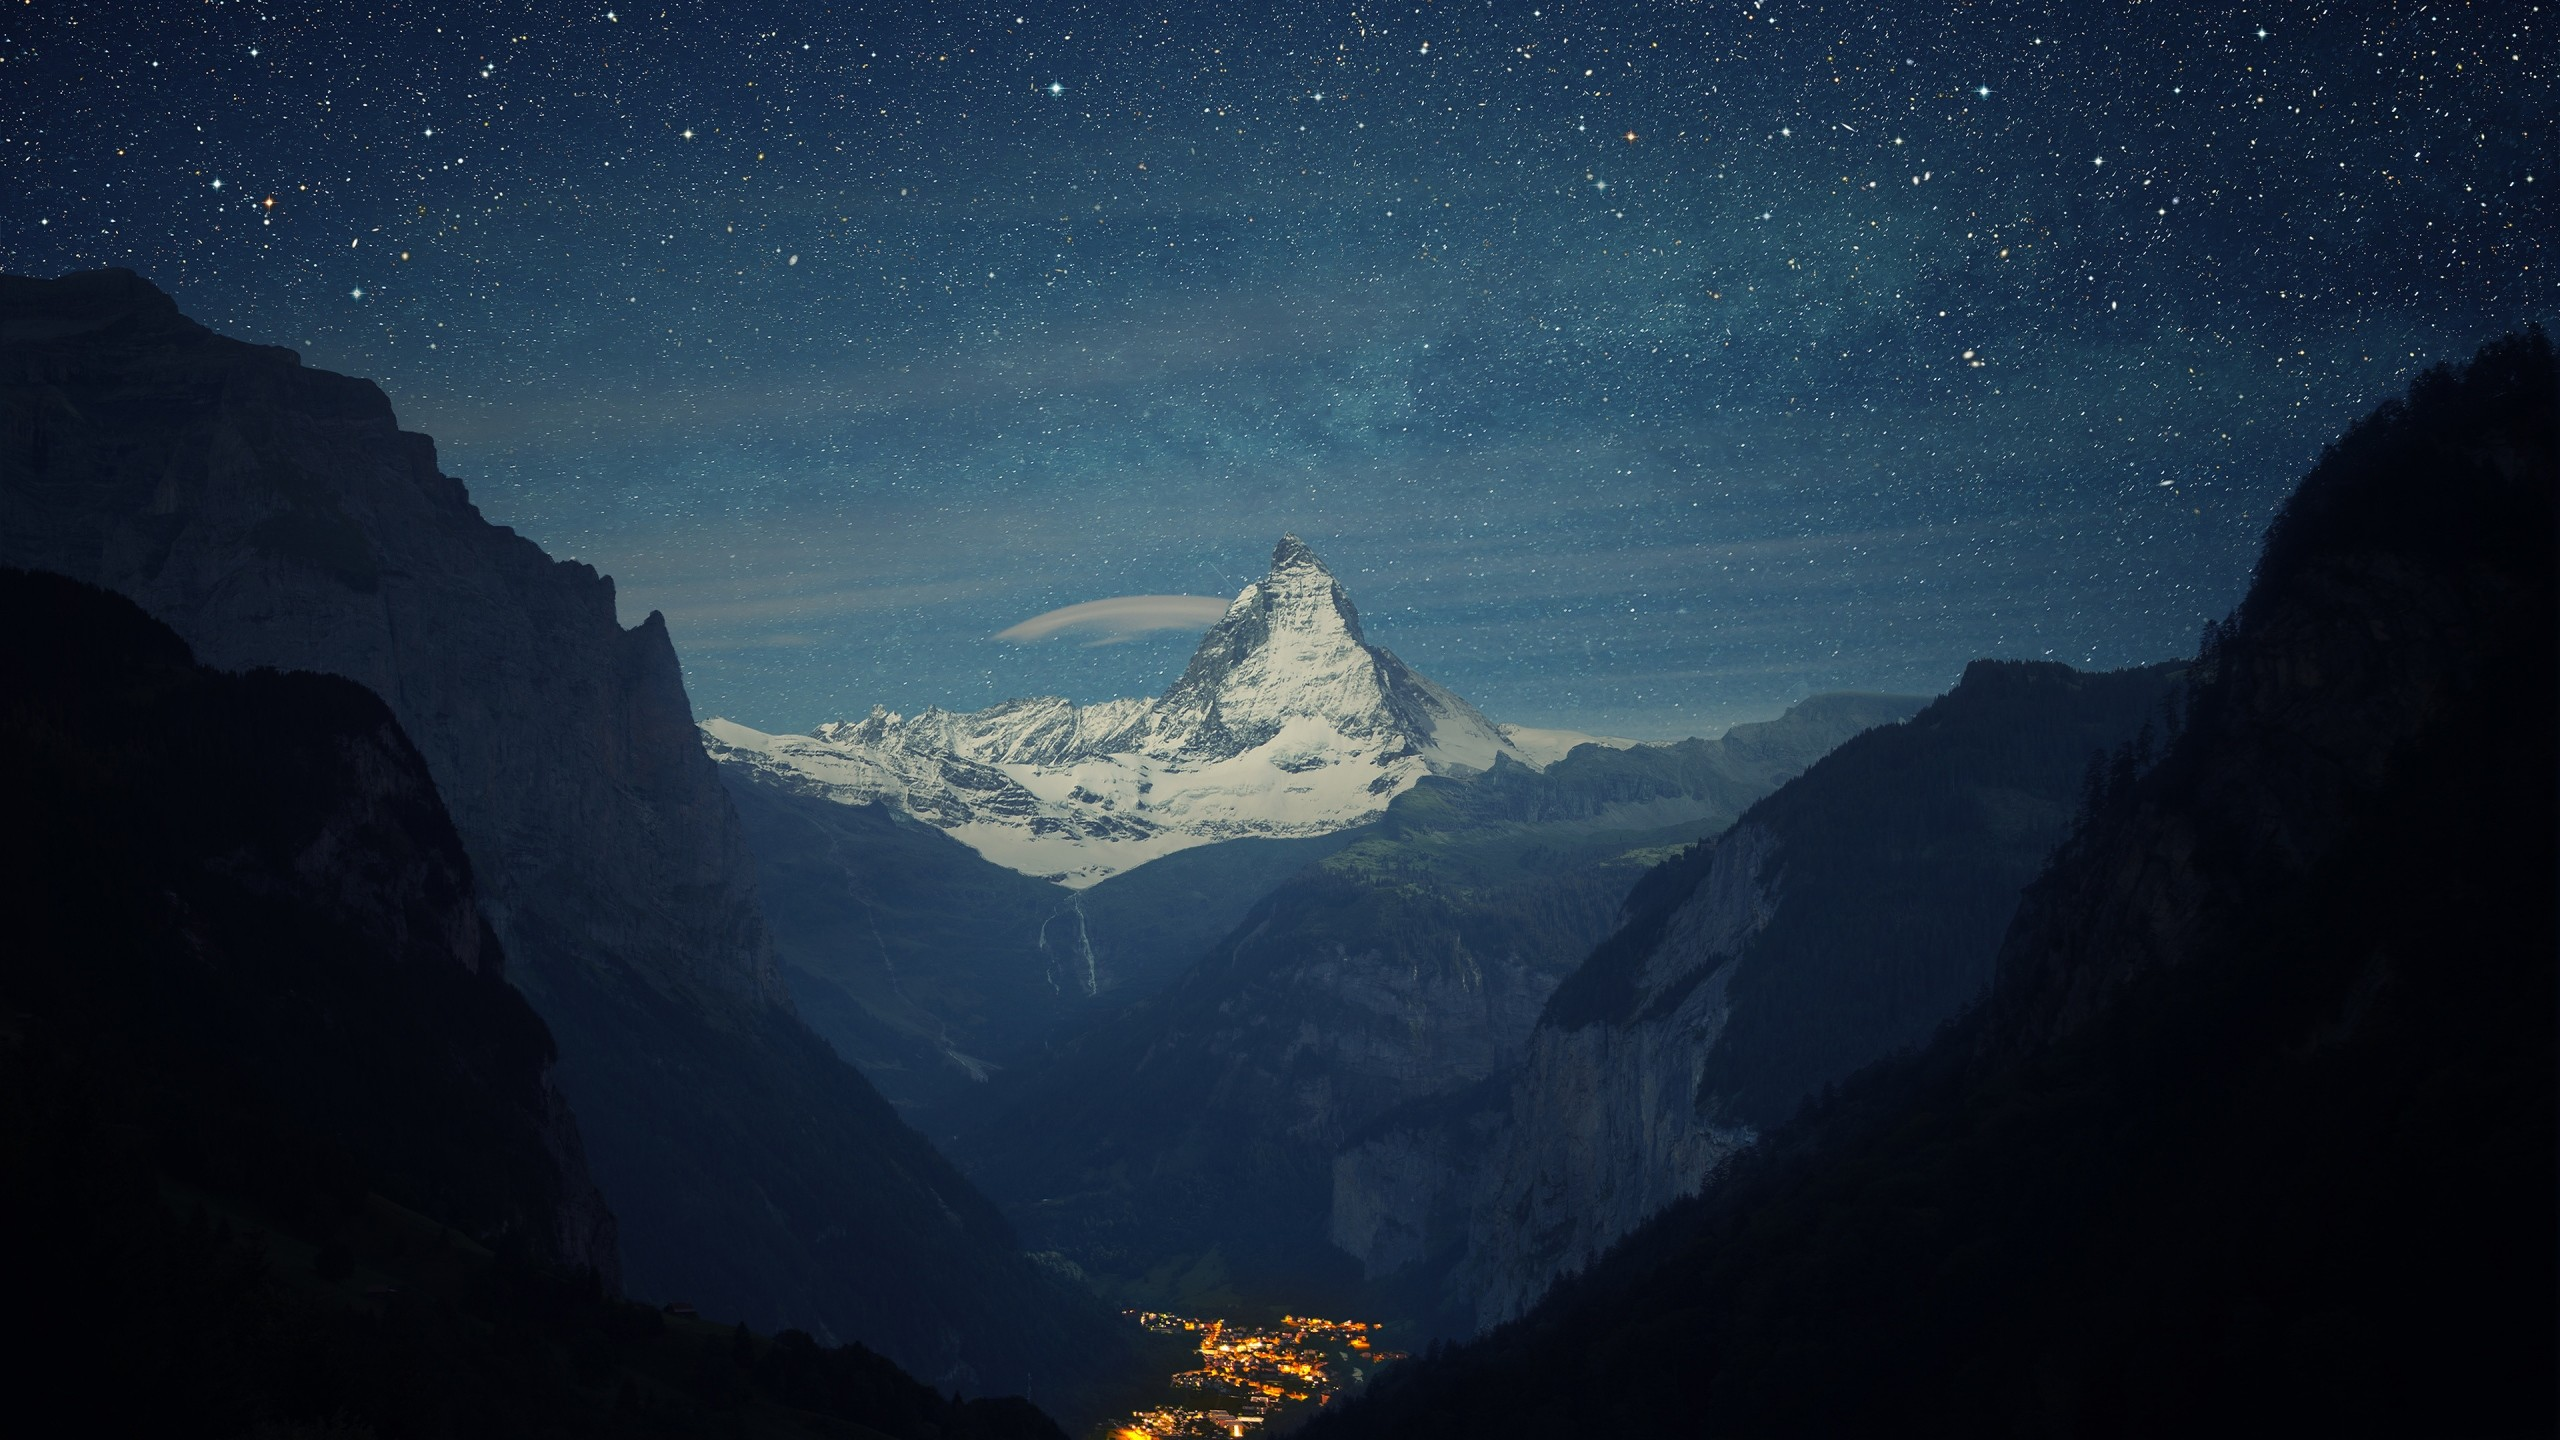 2560x1440 Preview wallpaper switzerland, alps, mountains, night, beautiful landscape